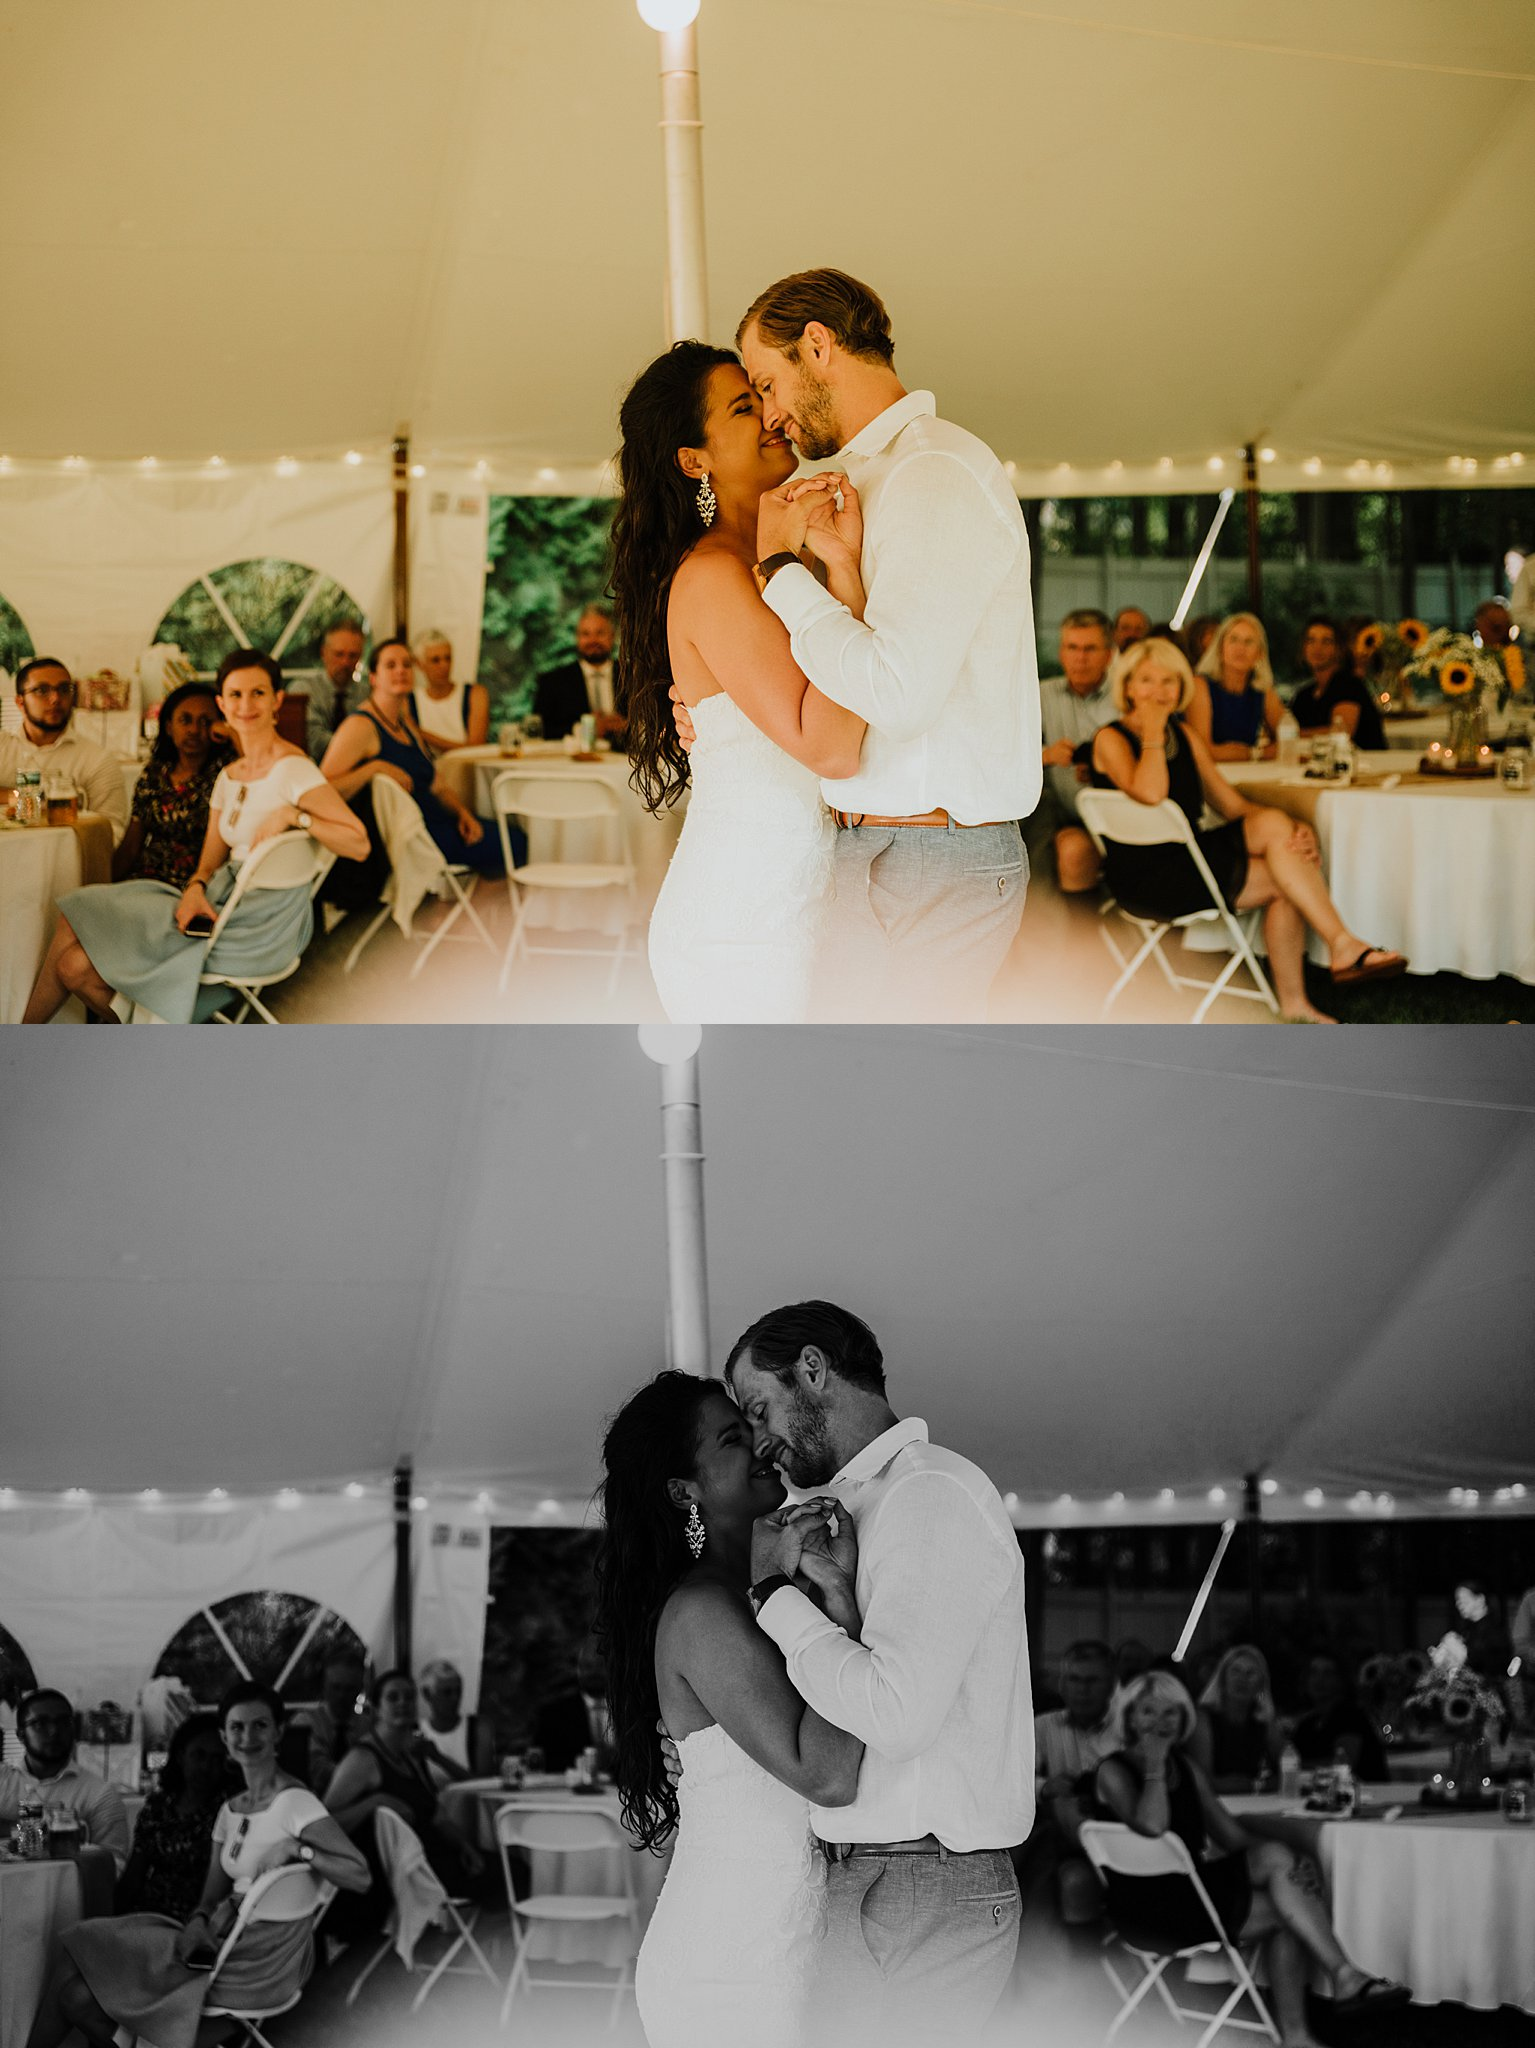 Amherst Wedding Photographer | Western Mass Photographer | New England Wedding Photographer | Massachusetts Wedding Photographer | Shelby Chari Photography